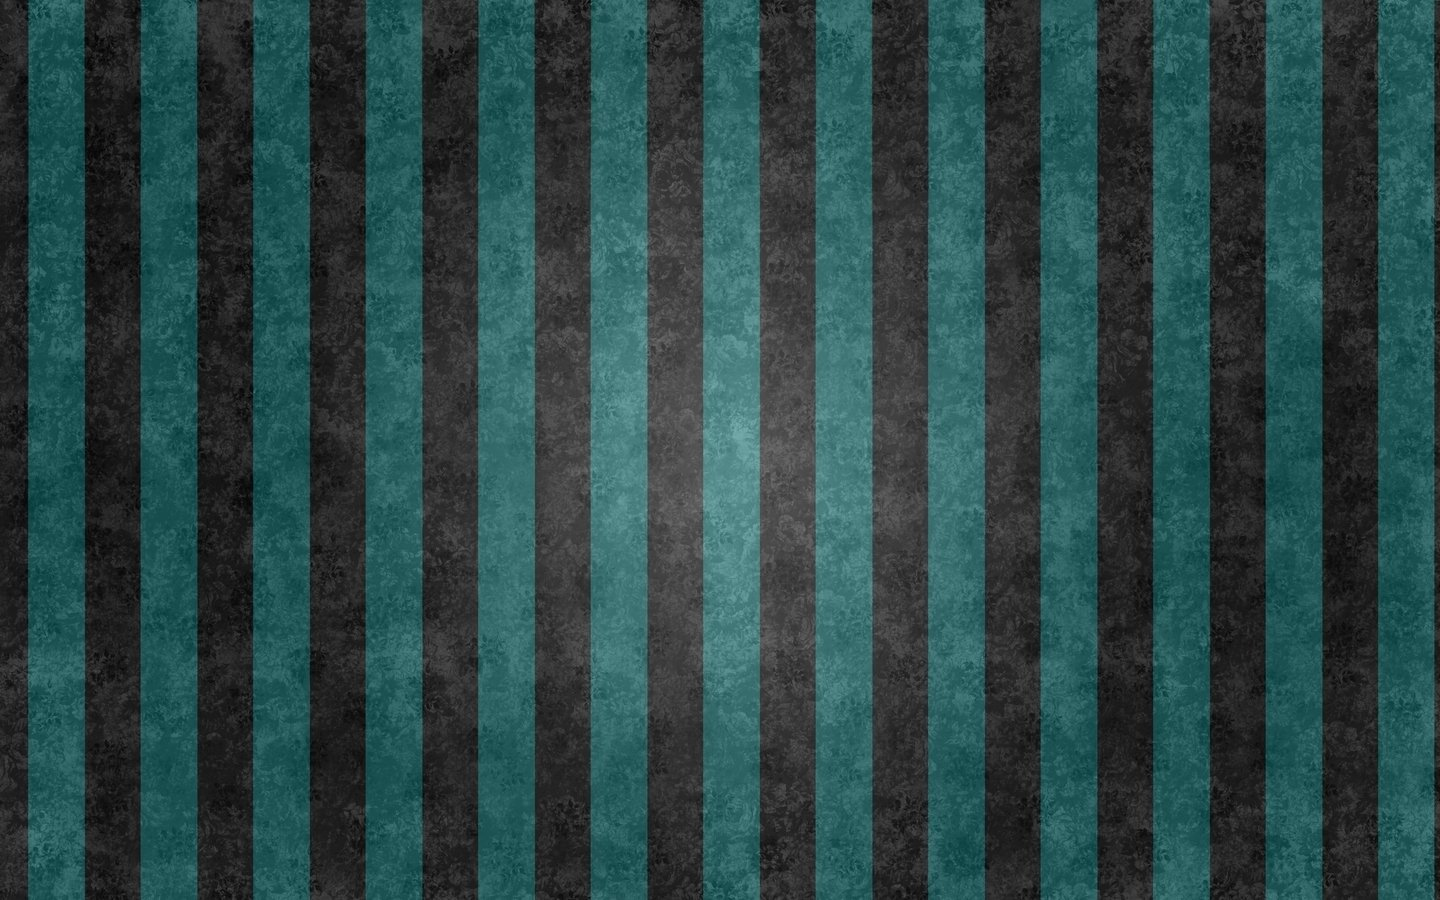 Hd wallpaper pattern - Hd Wallpaper Background Id 26850 1440x900 Pattern Stripe